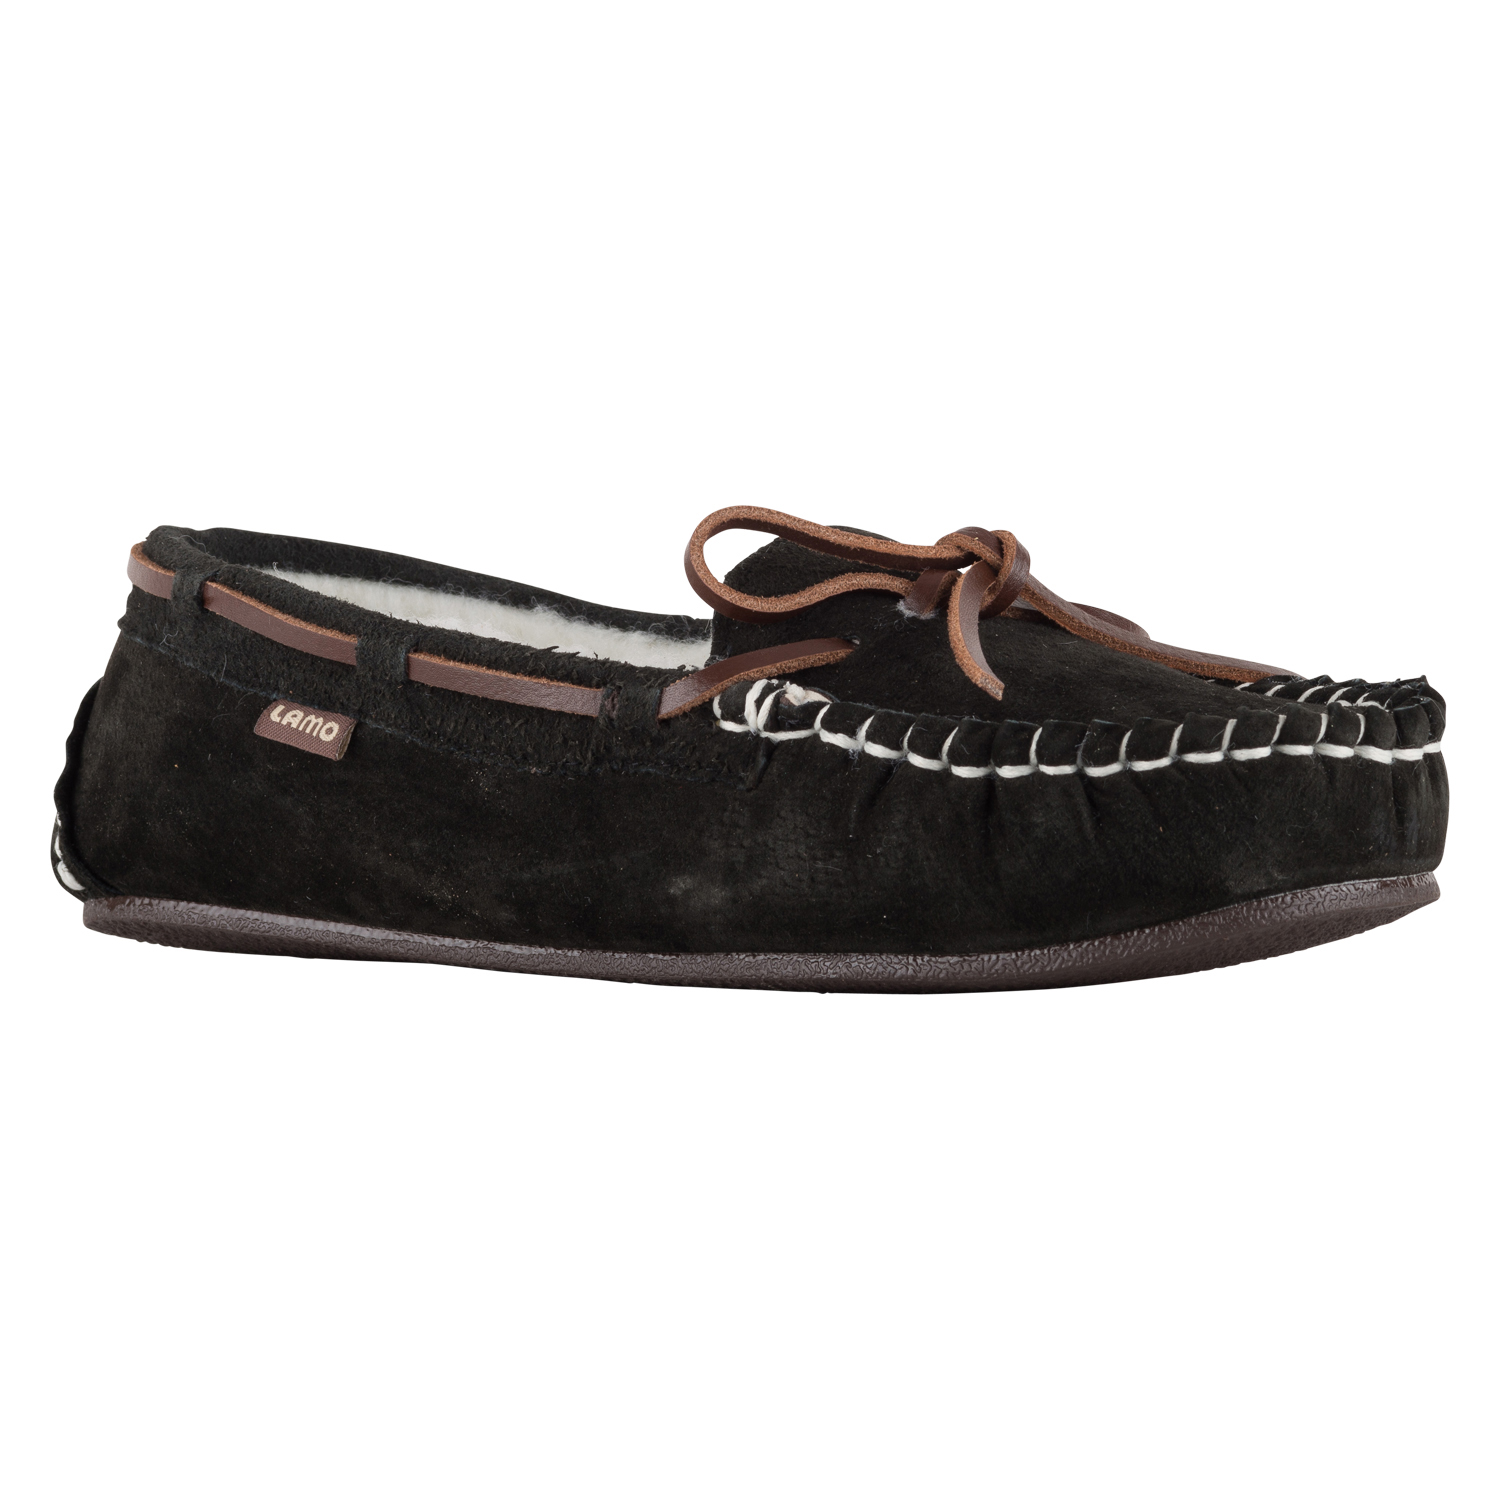 Lamo Women's Britain Lined Moc by JORDACHE LTD